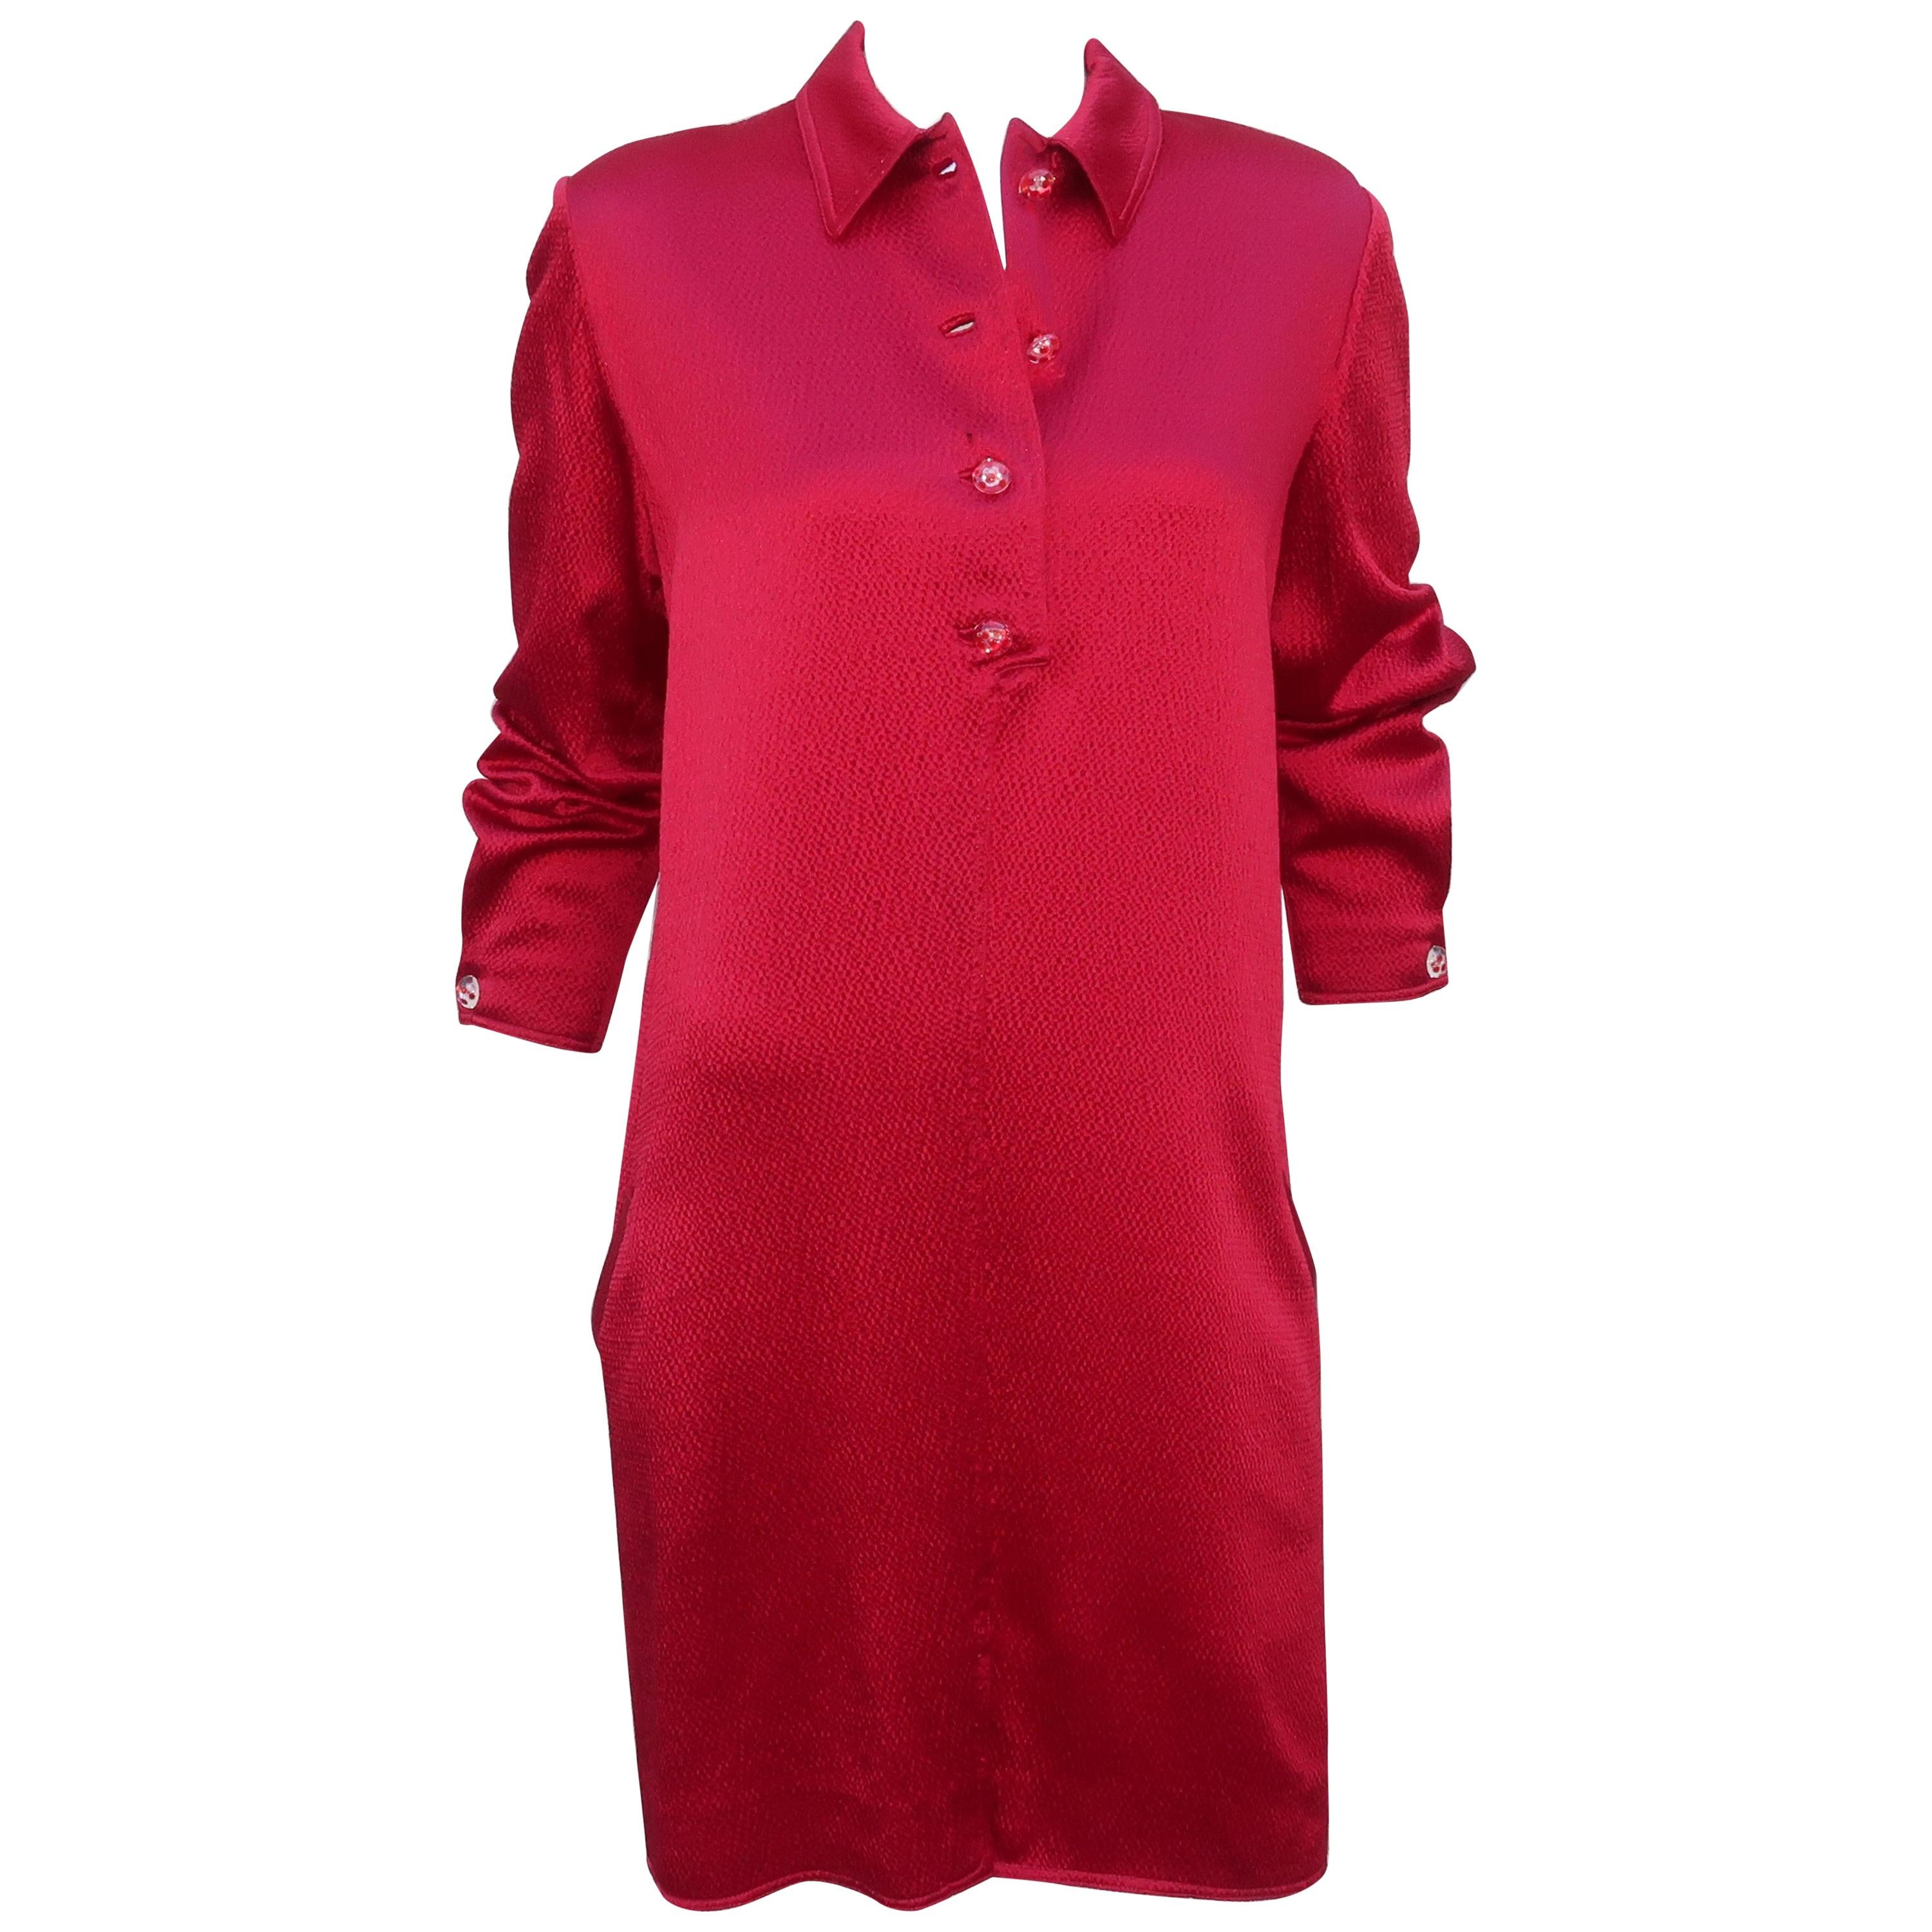 Geoffrey Beene Ruby Red Satin Shirt Dress With Lucite Buttons, 1980's